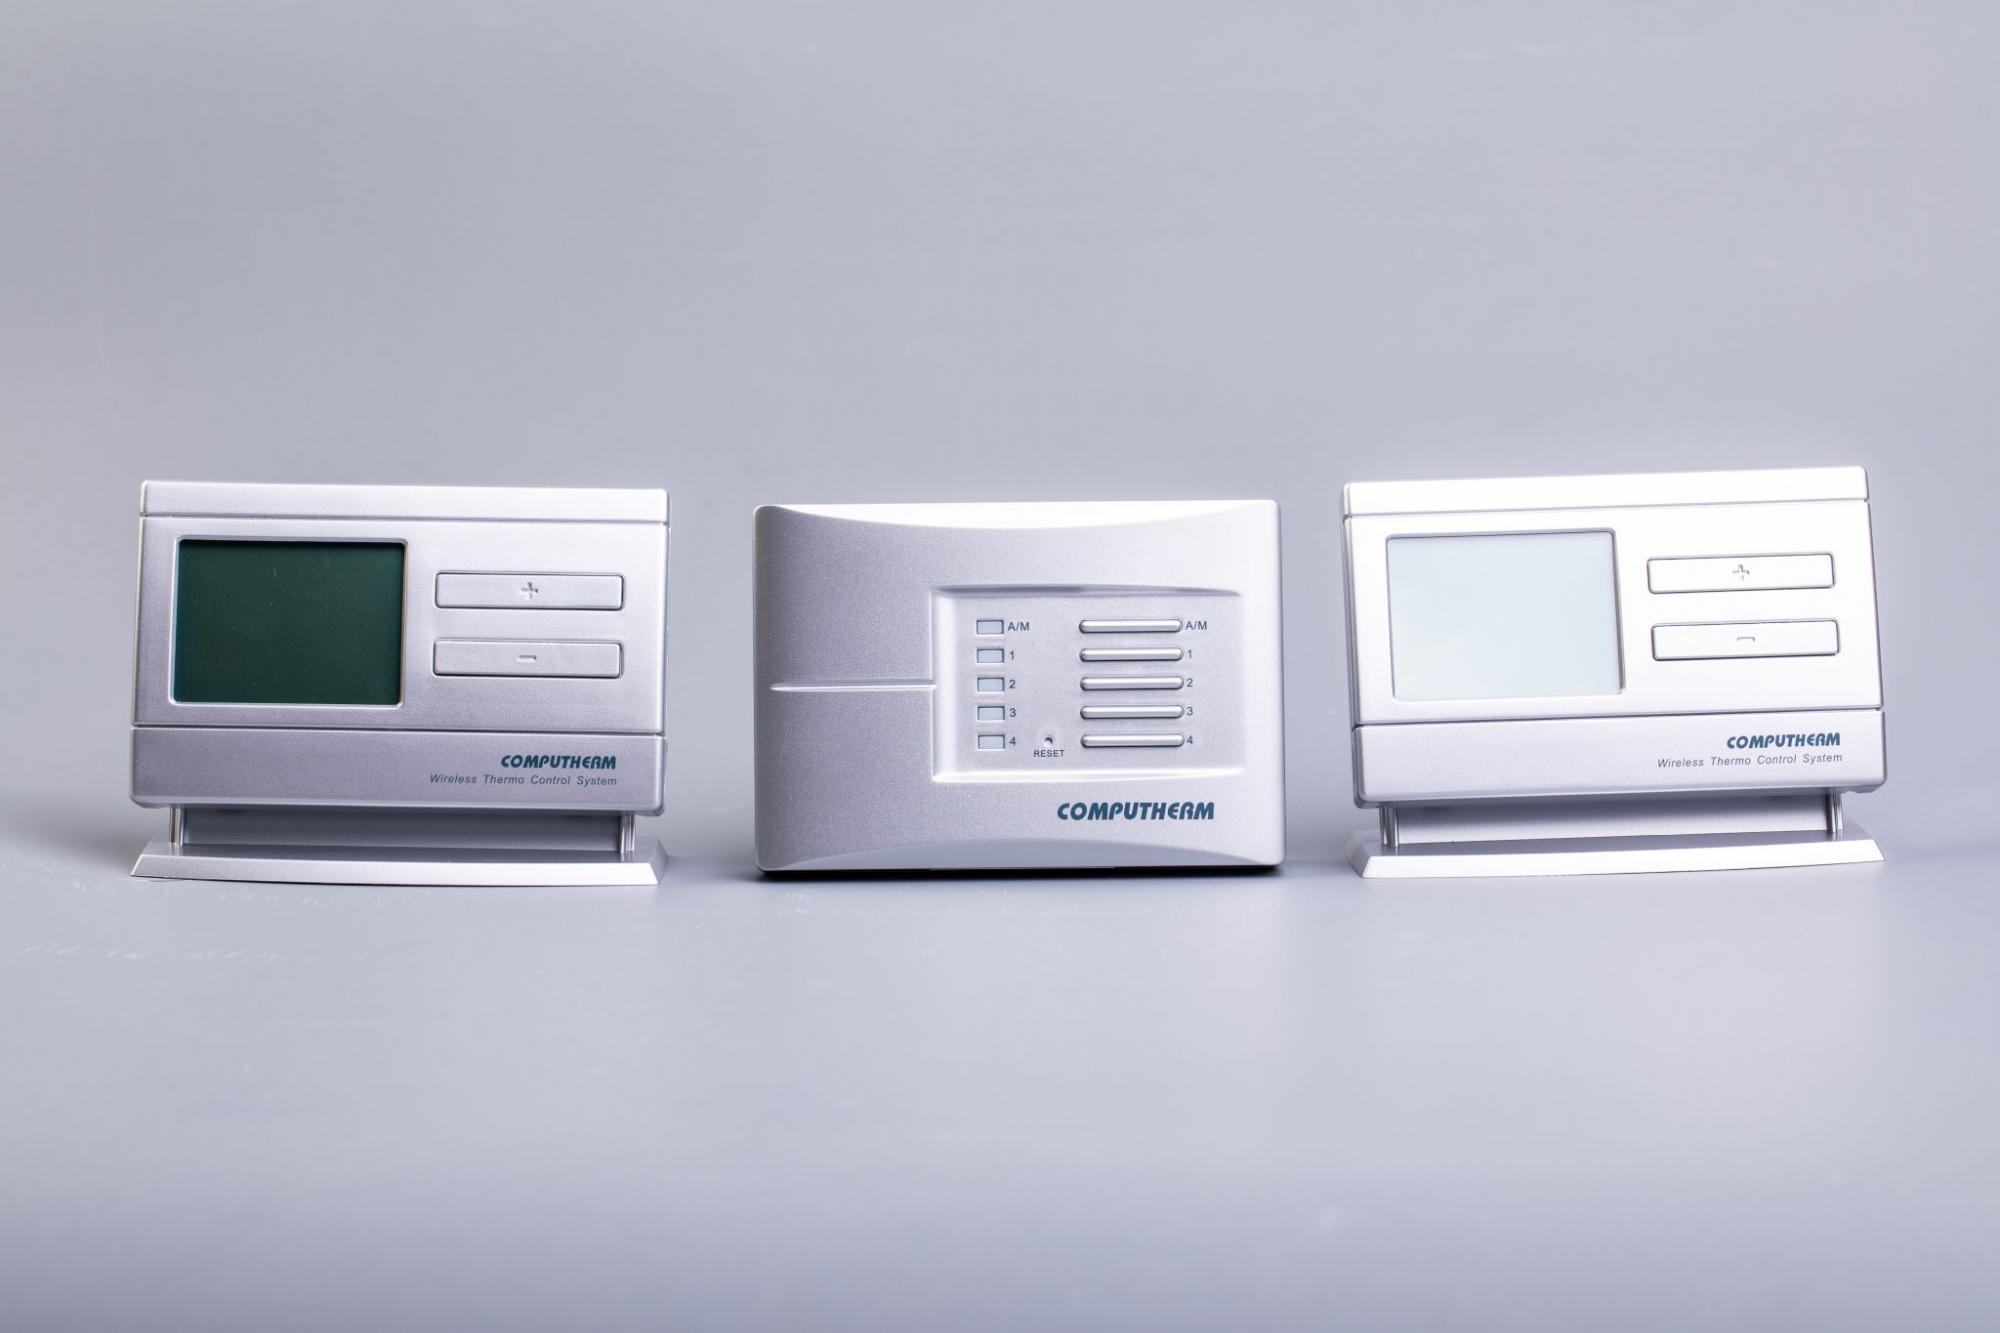 Computherm termostati Q8RF Wireless Multi-Zone 2 statistiche Trasmettitore Wireless UK